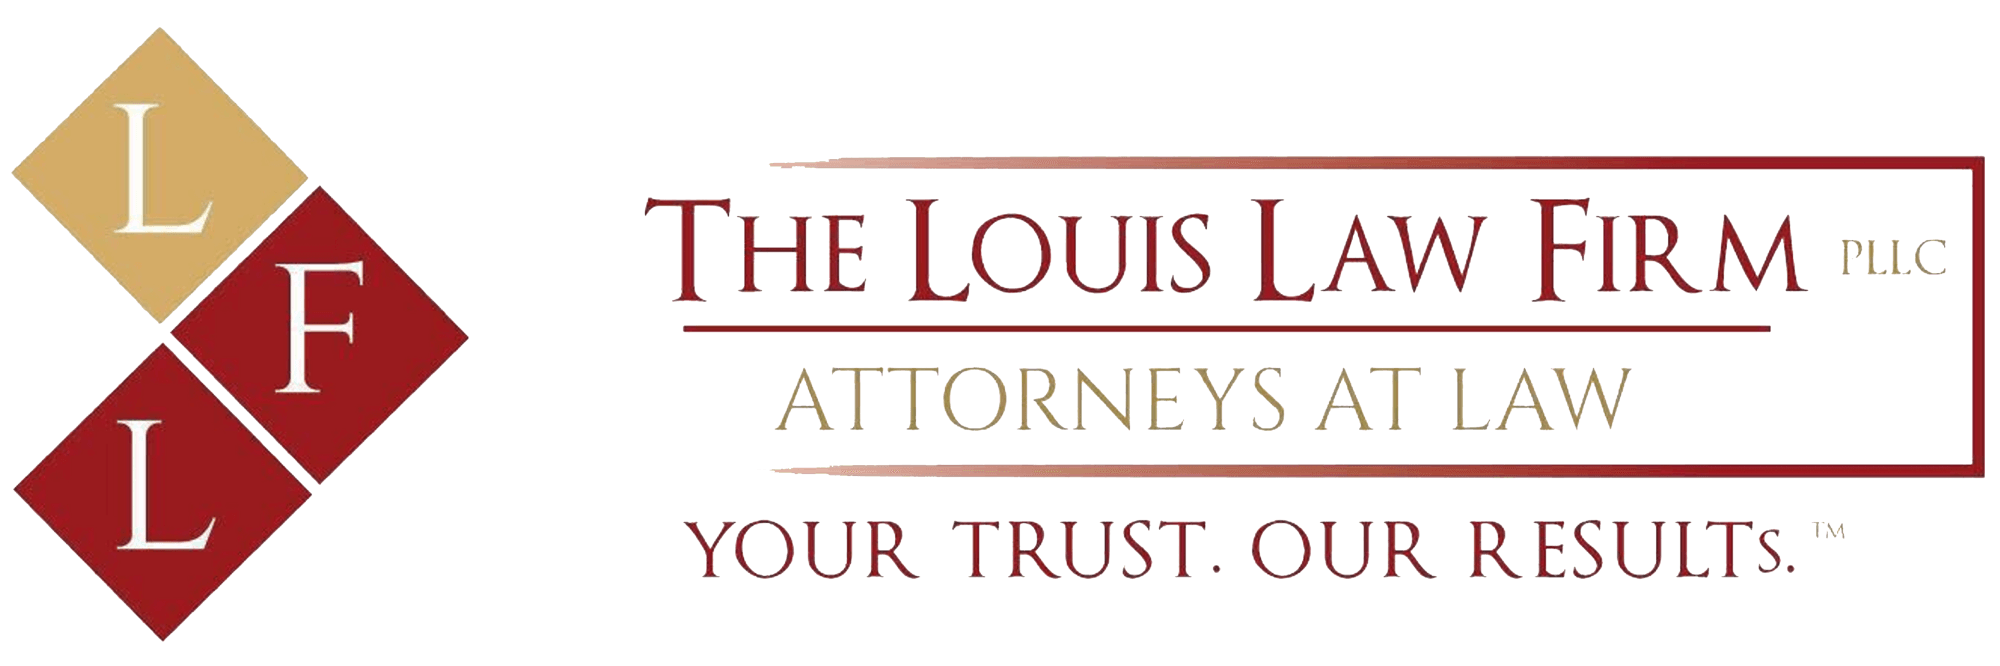 The Louis Law Firm, PLLC